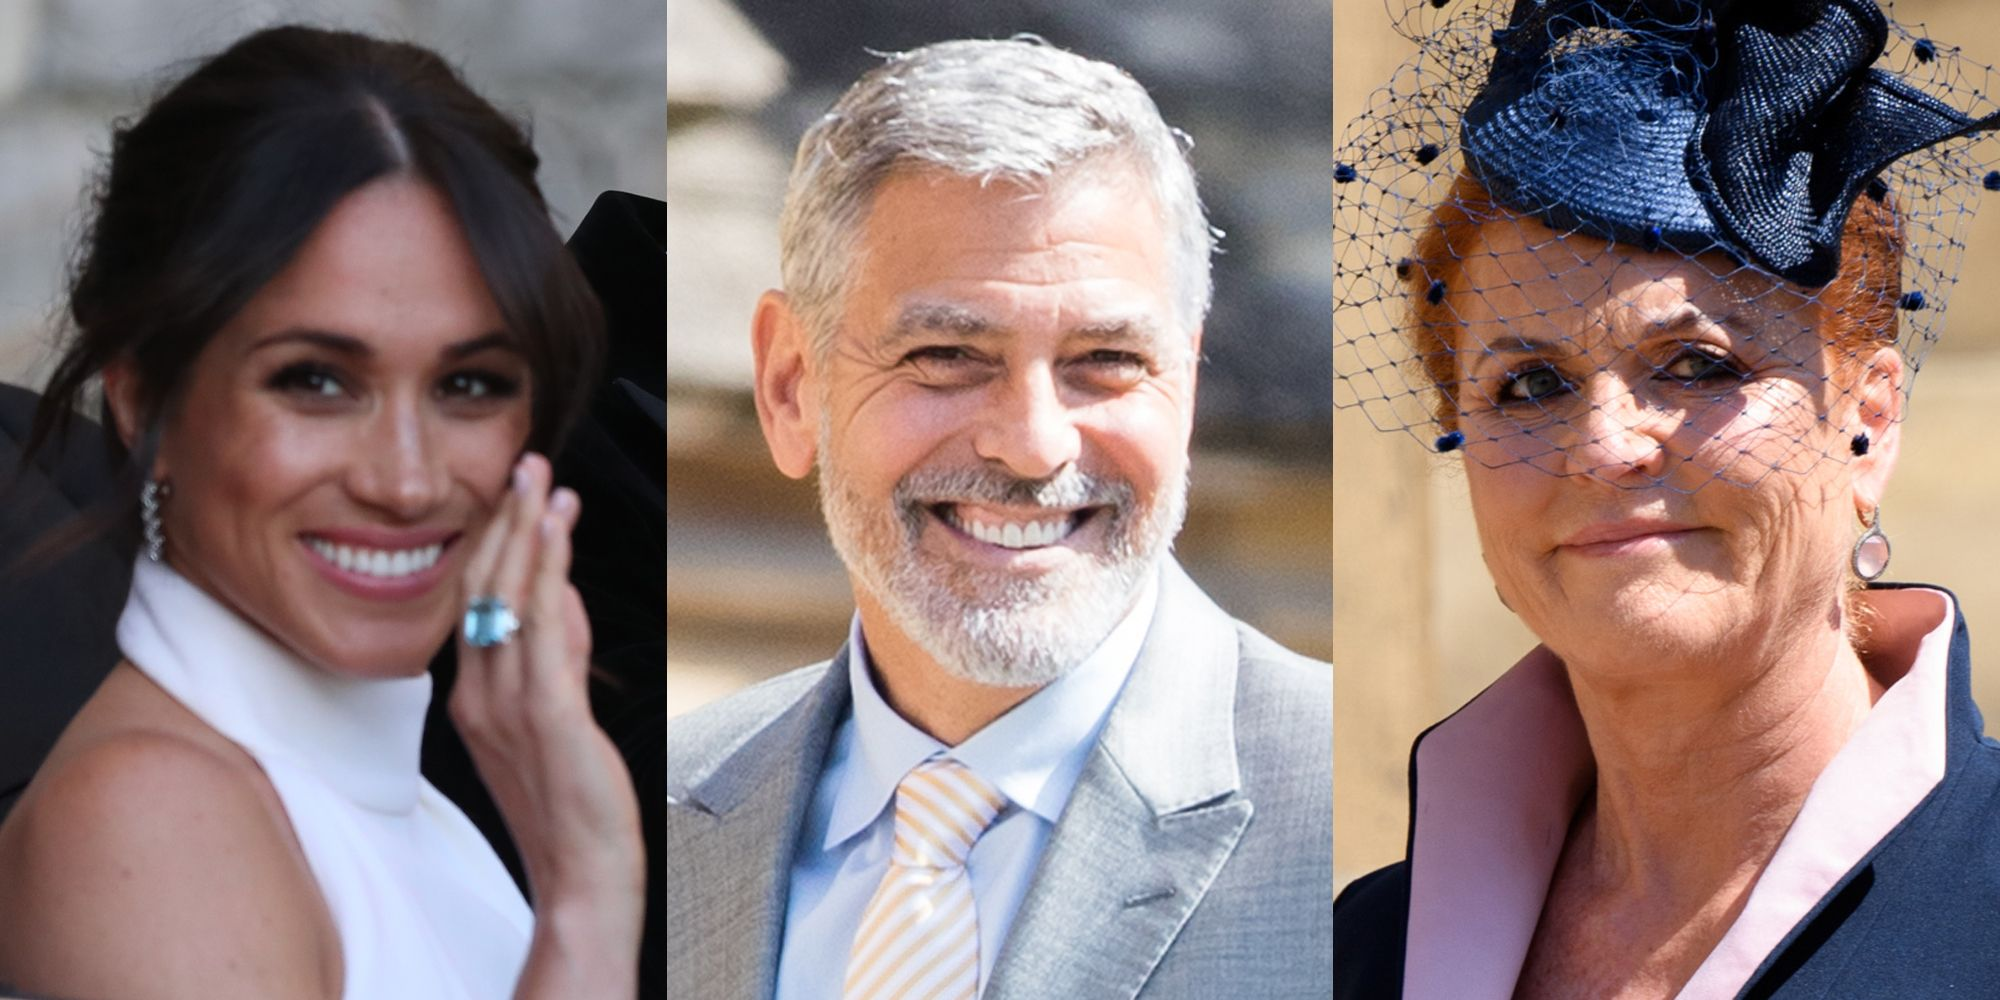 Meghan Markle, George Clooney, and Fergie